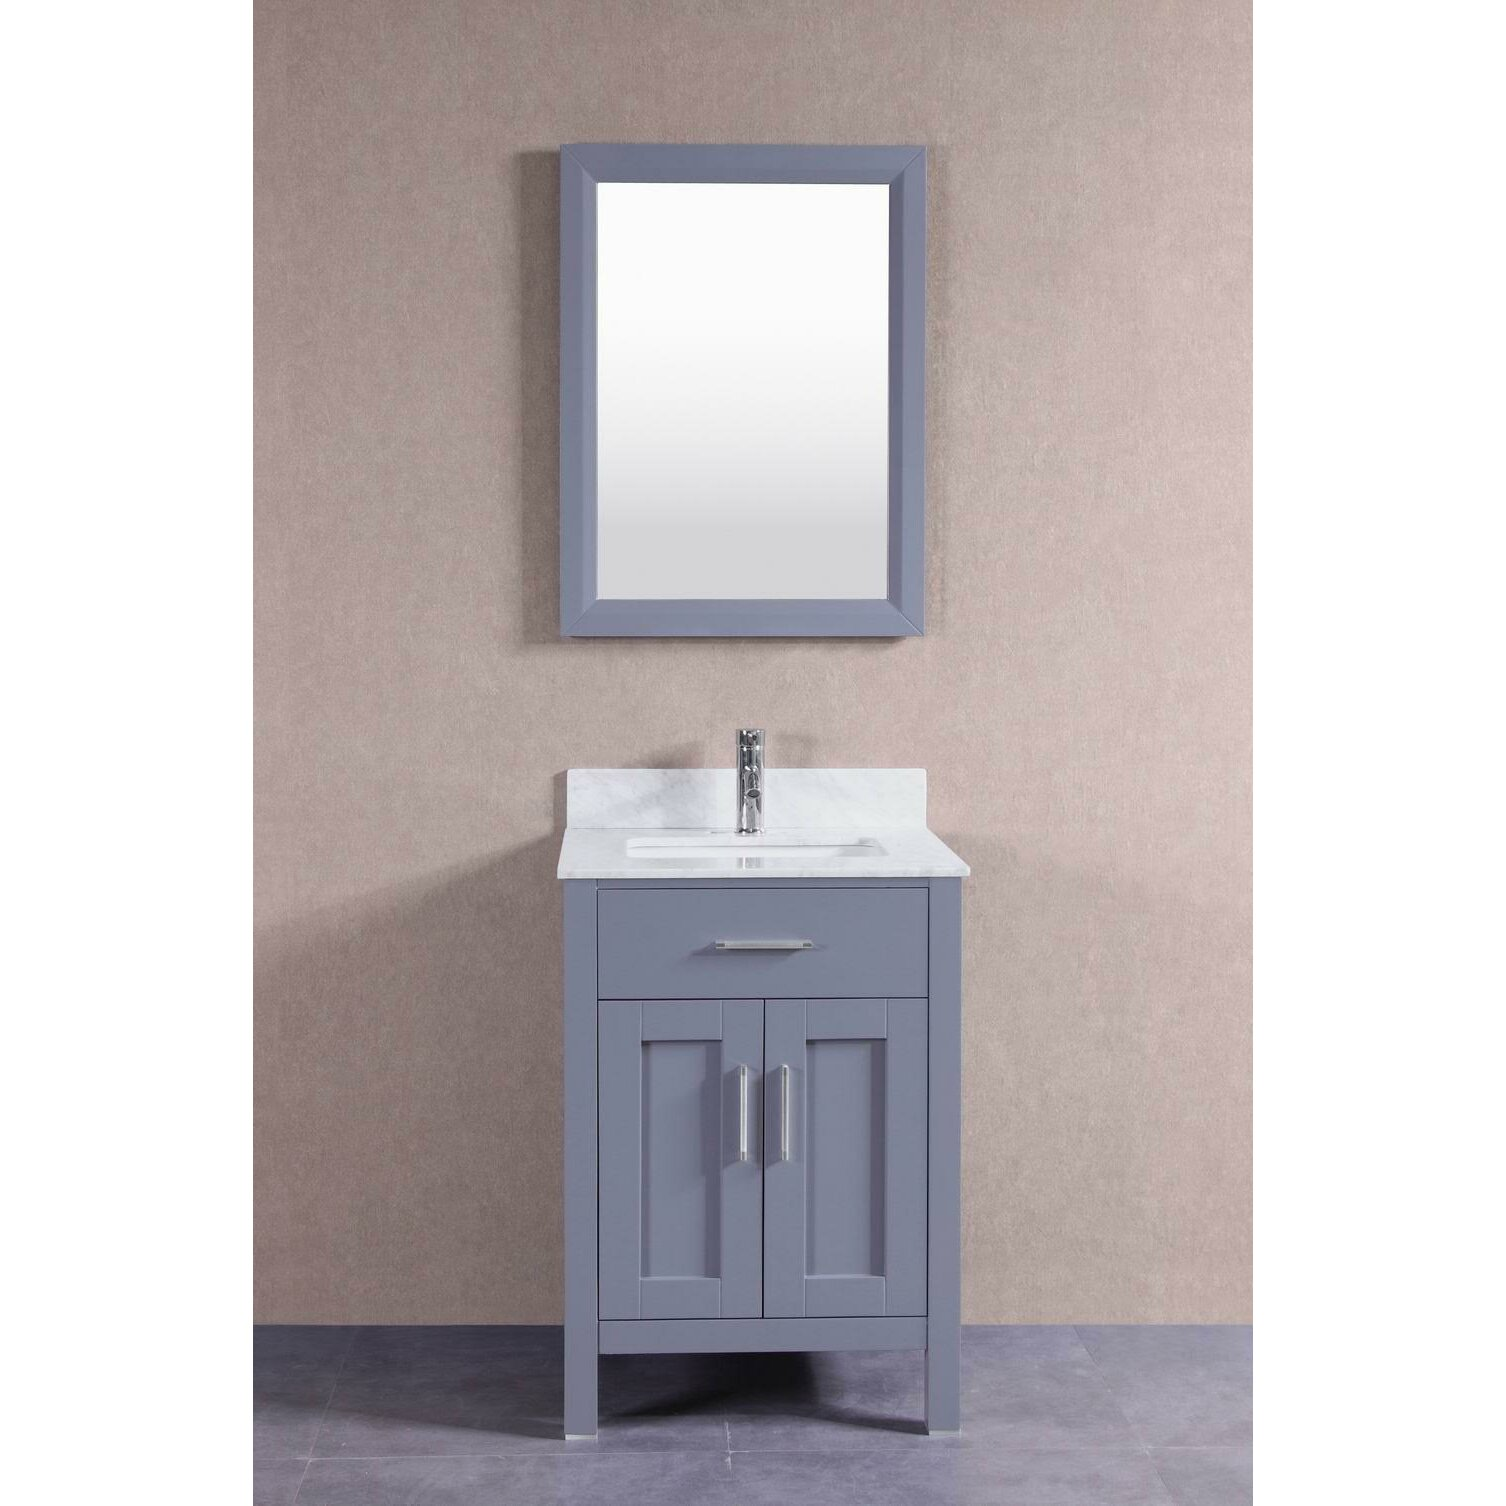 "BelvedereBath 24"" Single Bathroom Vanity Set"